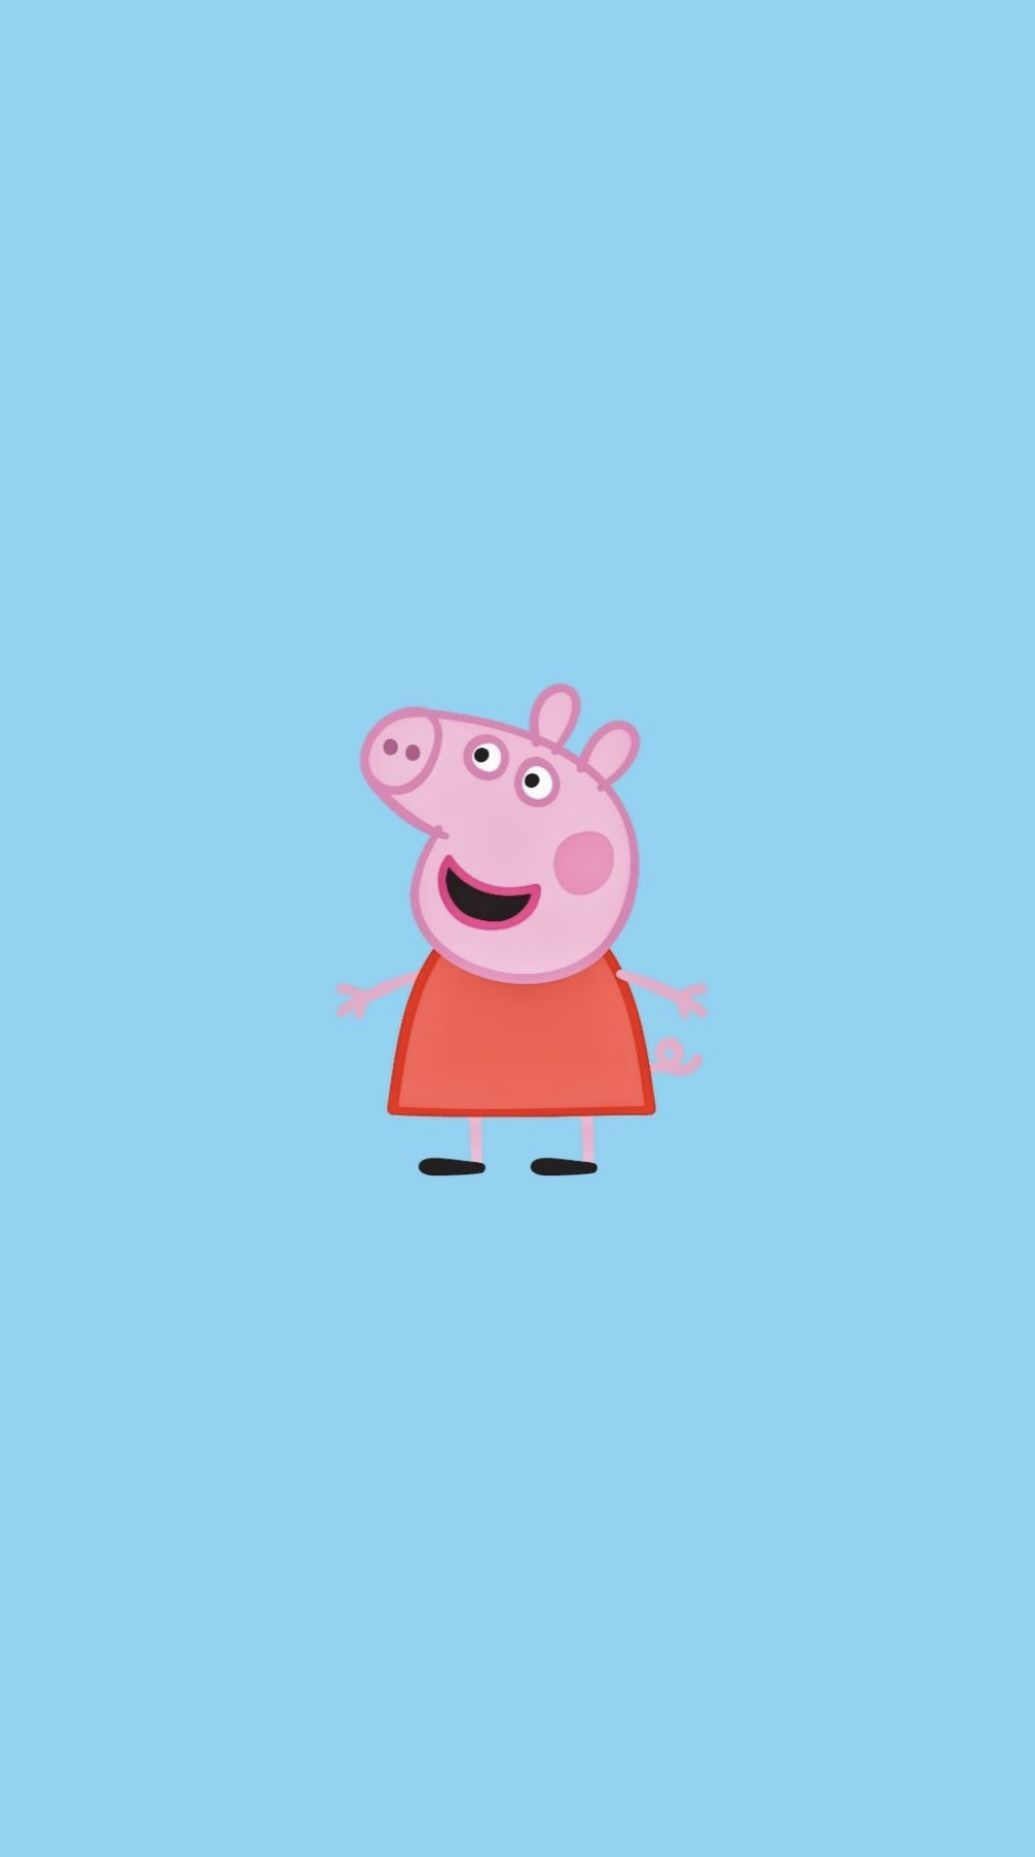 Pin By Emily Hickok On Wallpapers Peppa Pig Wallpaper Pig